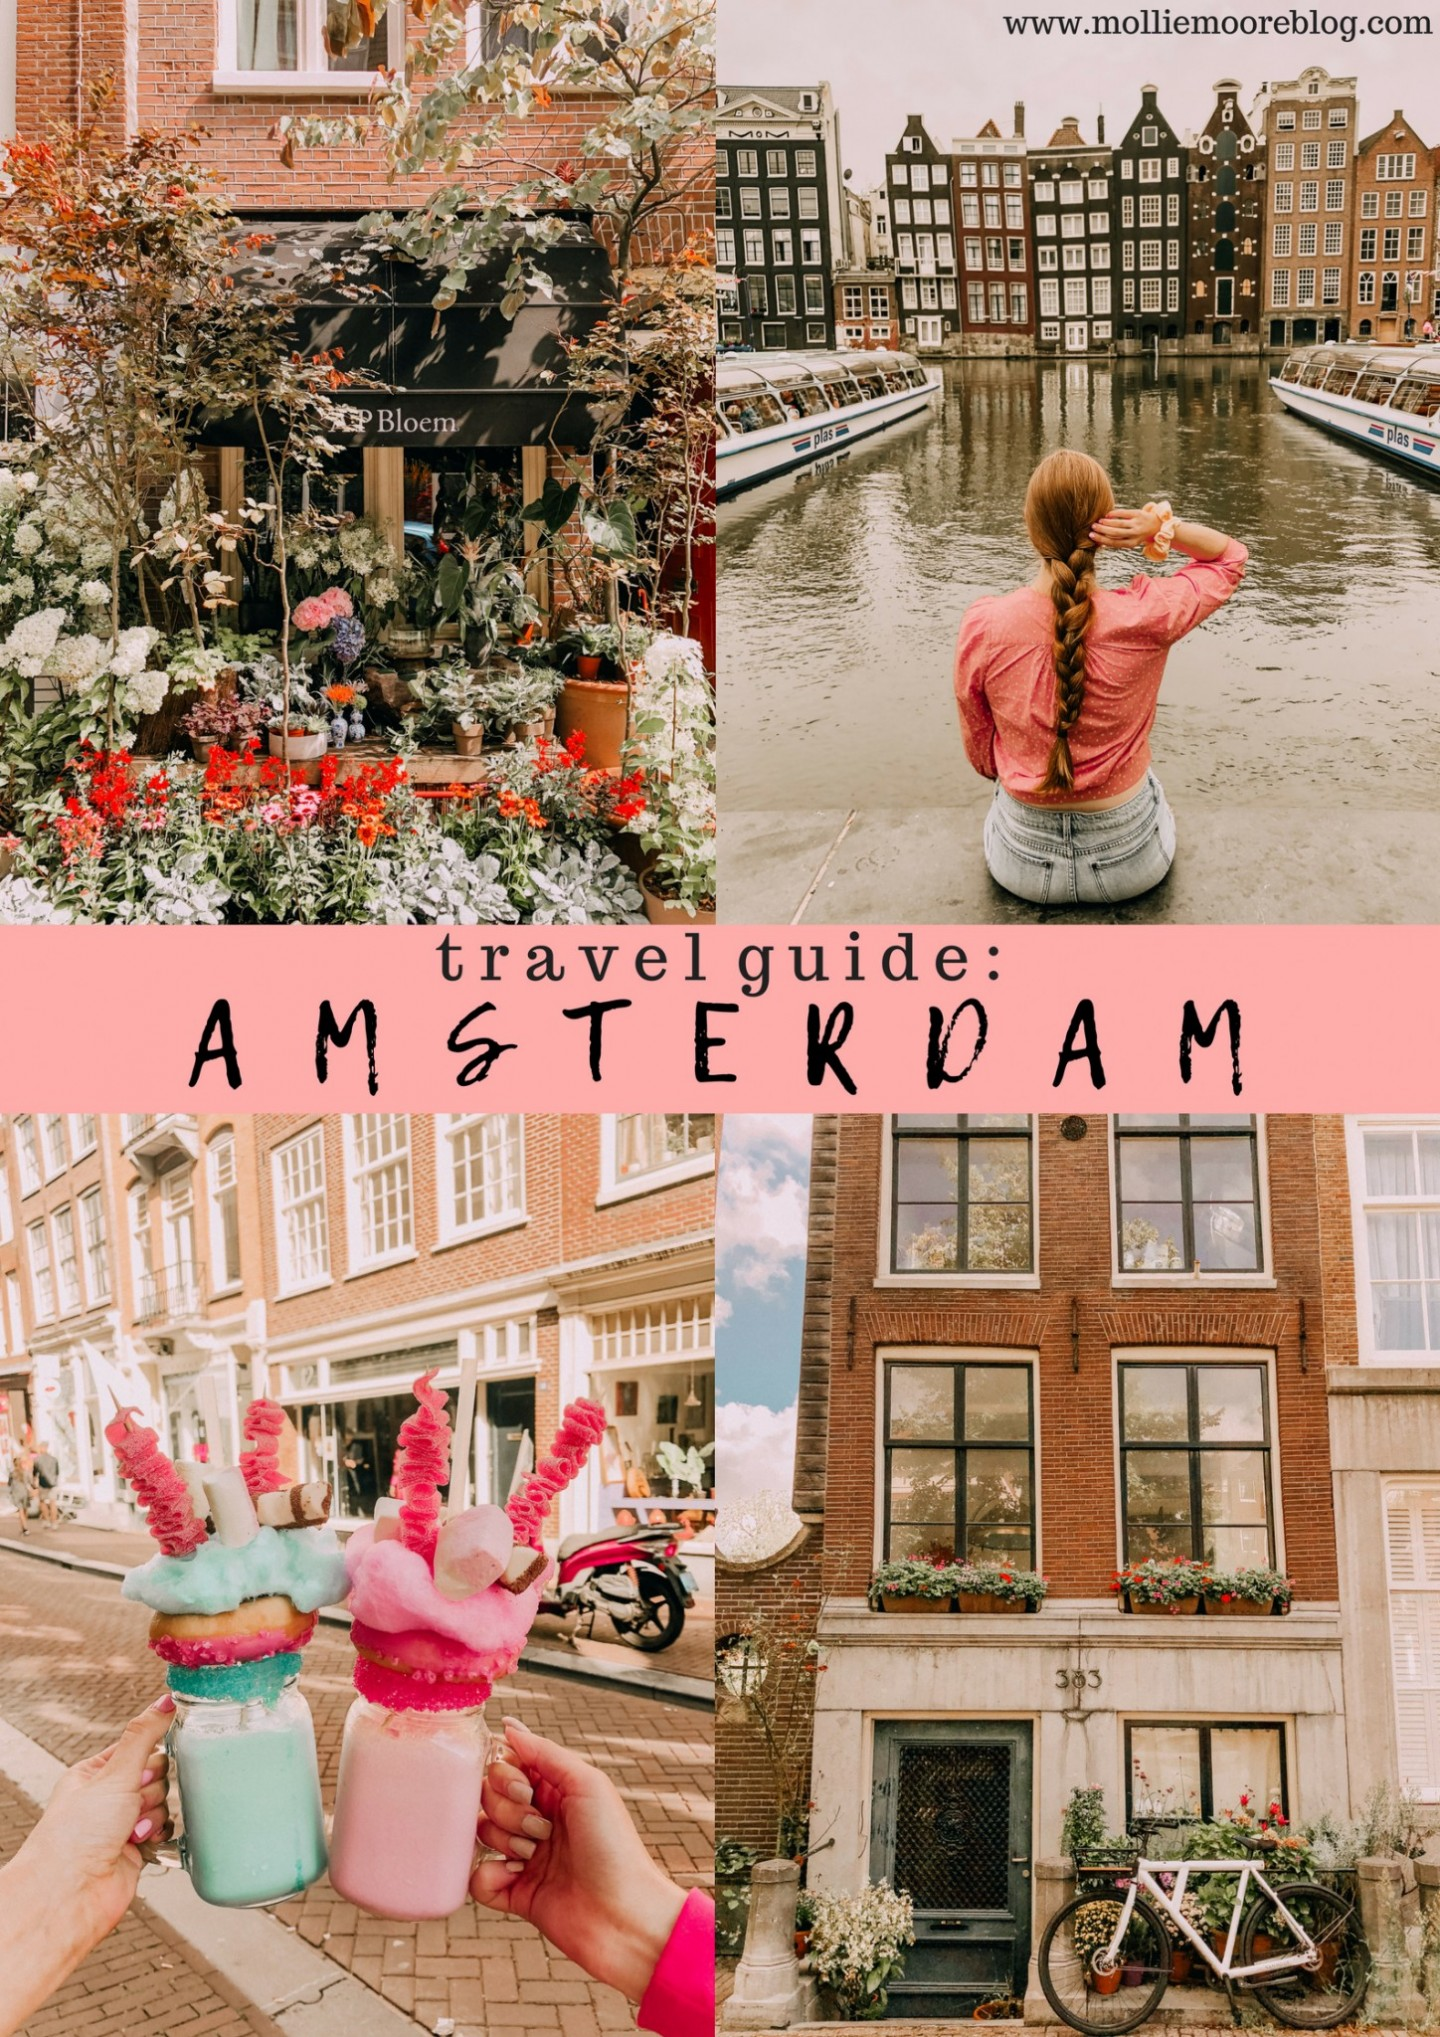 Popular London travel blogger Mollie Moore shares fun things to do in Amsterdam